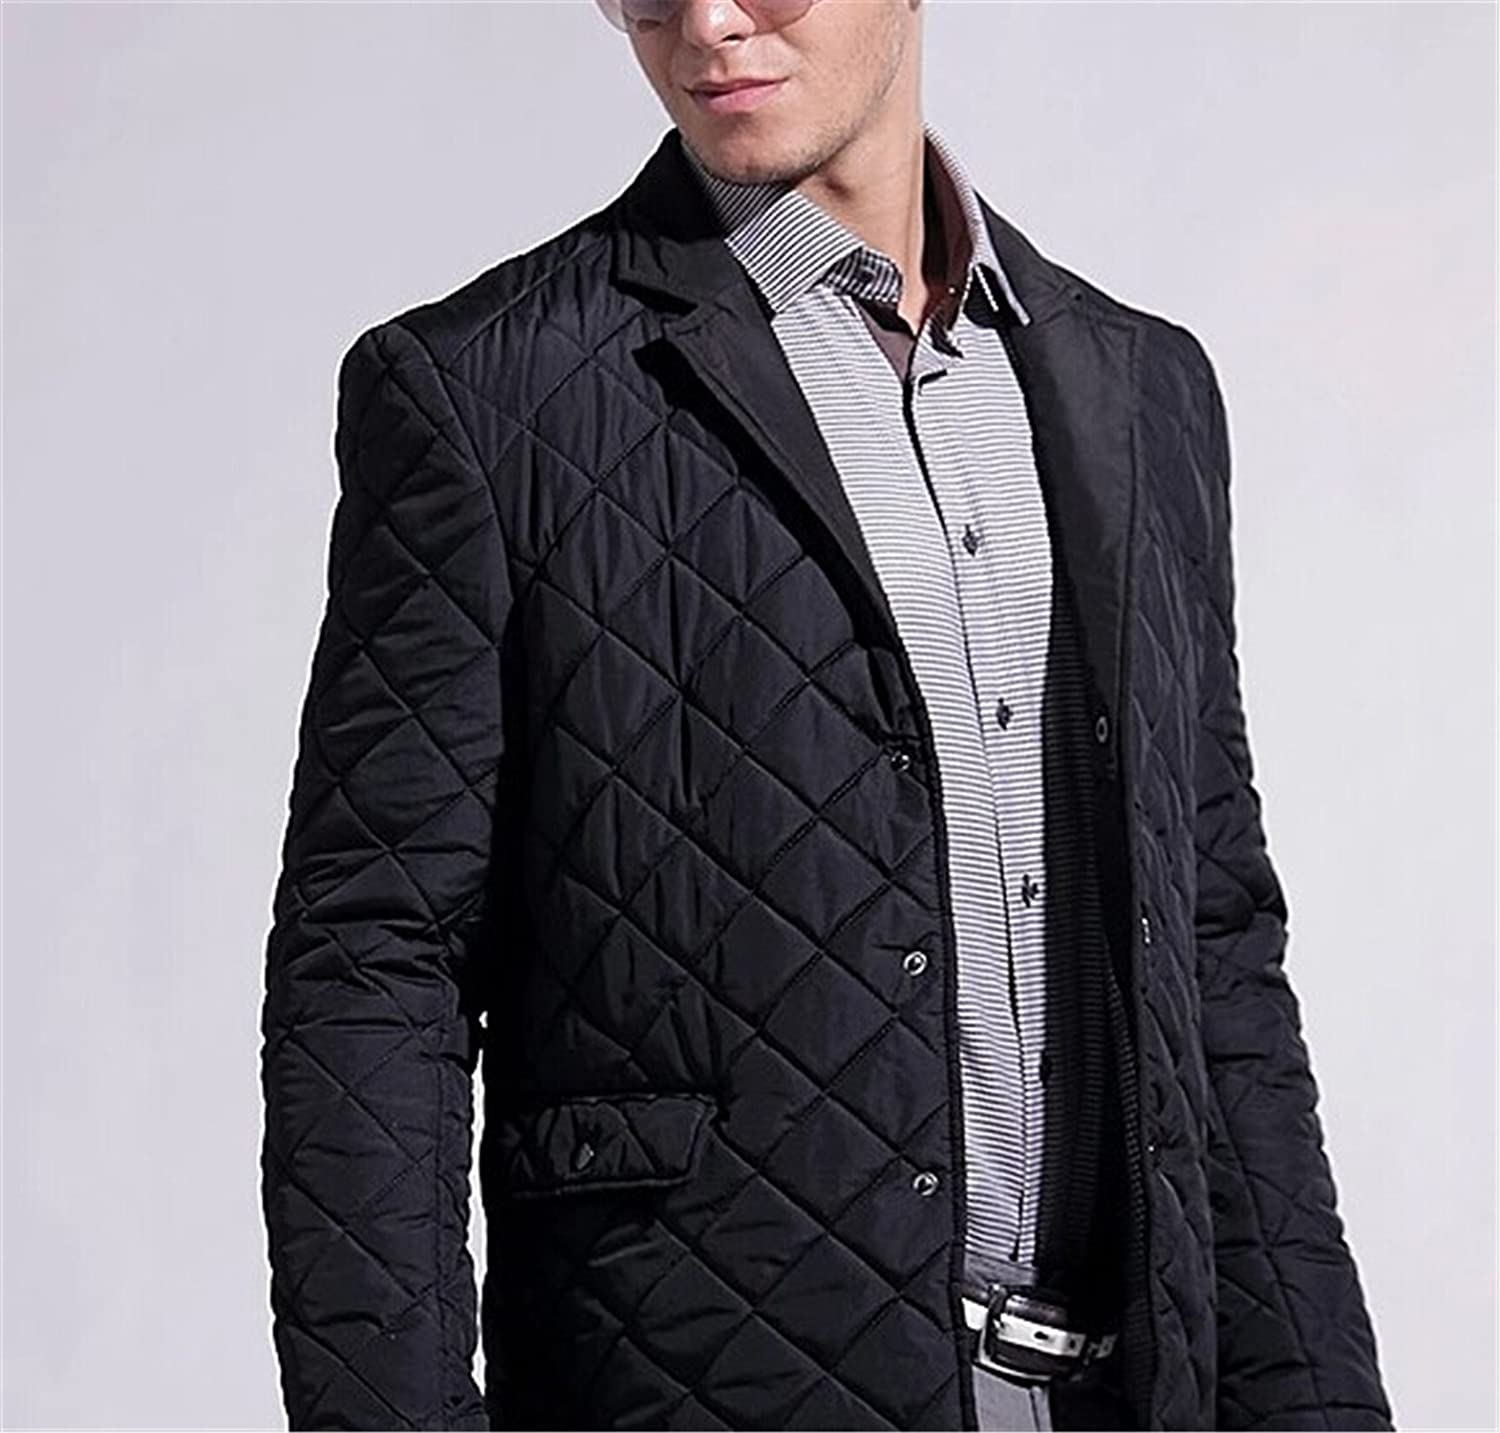 Sonjer Winter Mens Coat Jacket Cotton Solid Covered Button Padded Fashion Business Casual Quilting Patchwork Outerwear